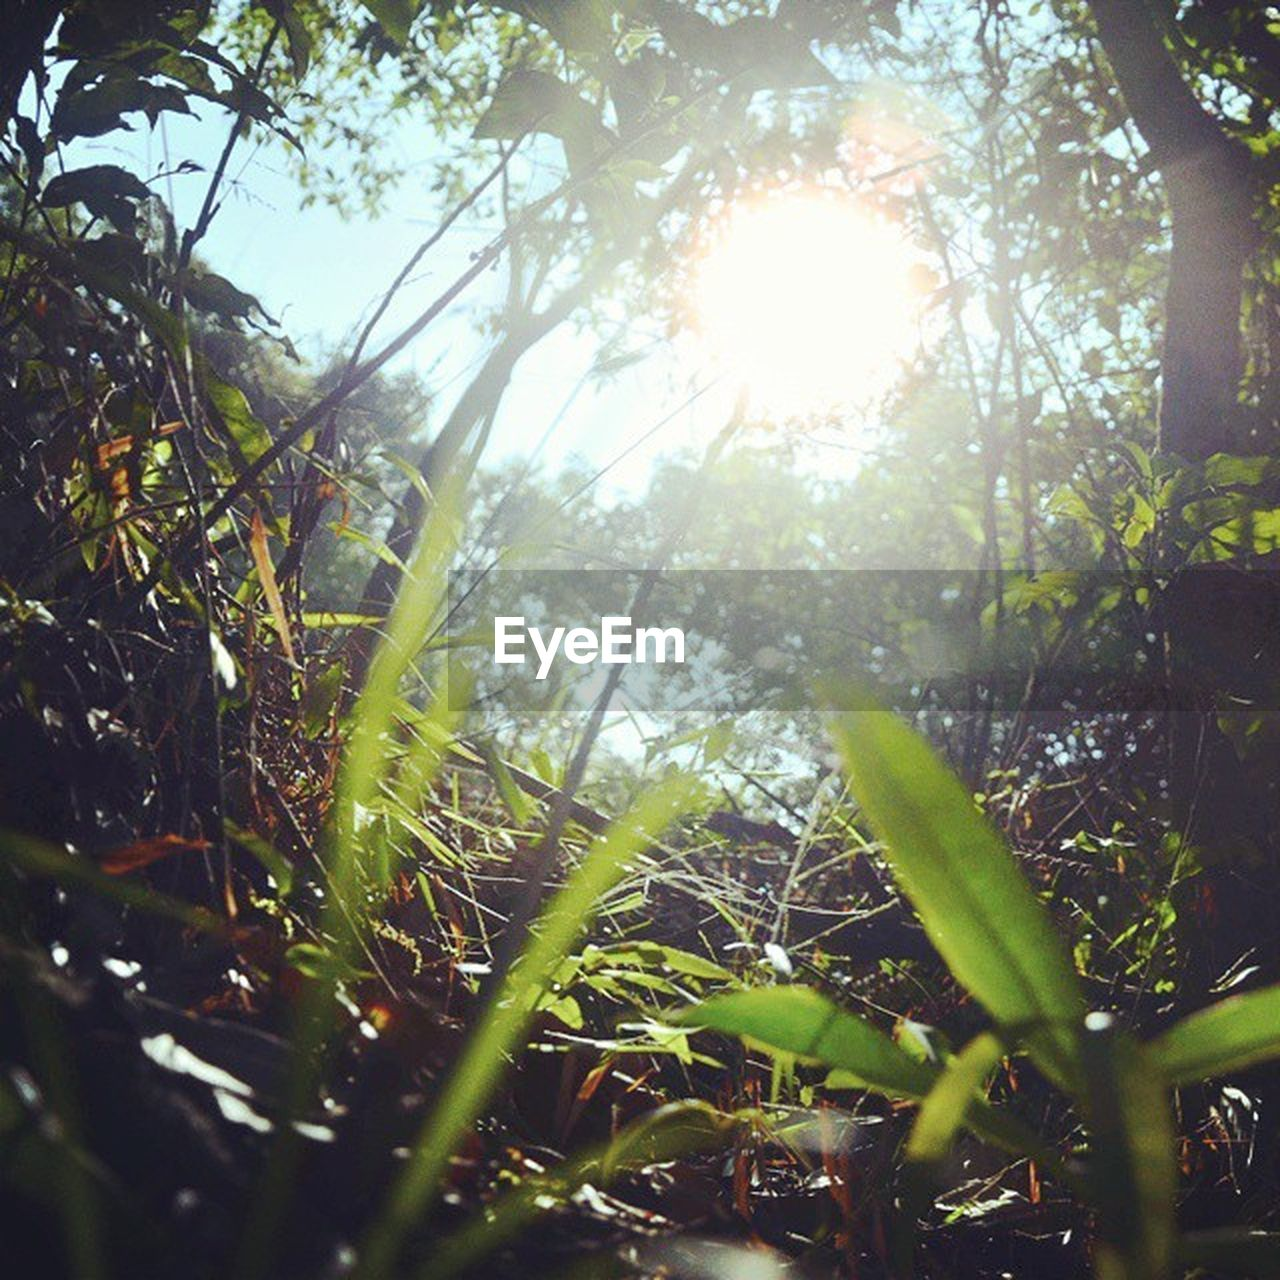 plant, sunlight, growth, tree, nature, beauty in nature, sunbeam, land, lens flare, tranquility, day, green color, sun, no people, forest, sunny, sky, grass, tranquil scene, outdoors, bright, brightly lit, streaming, blade of grass